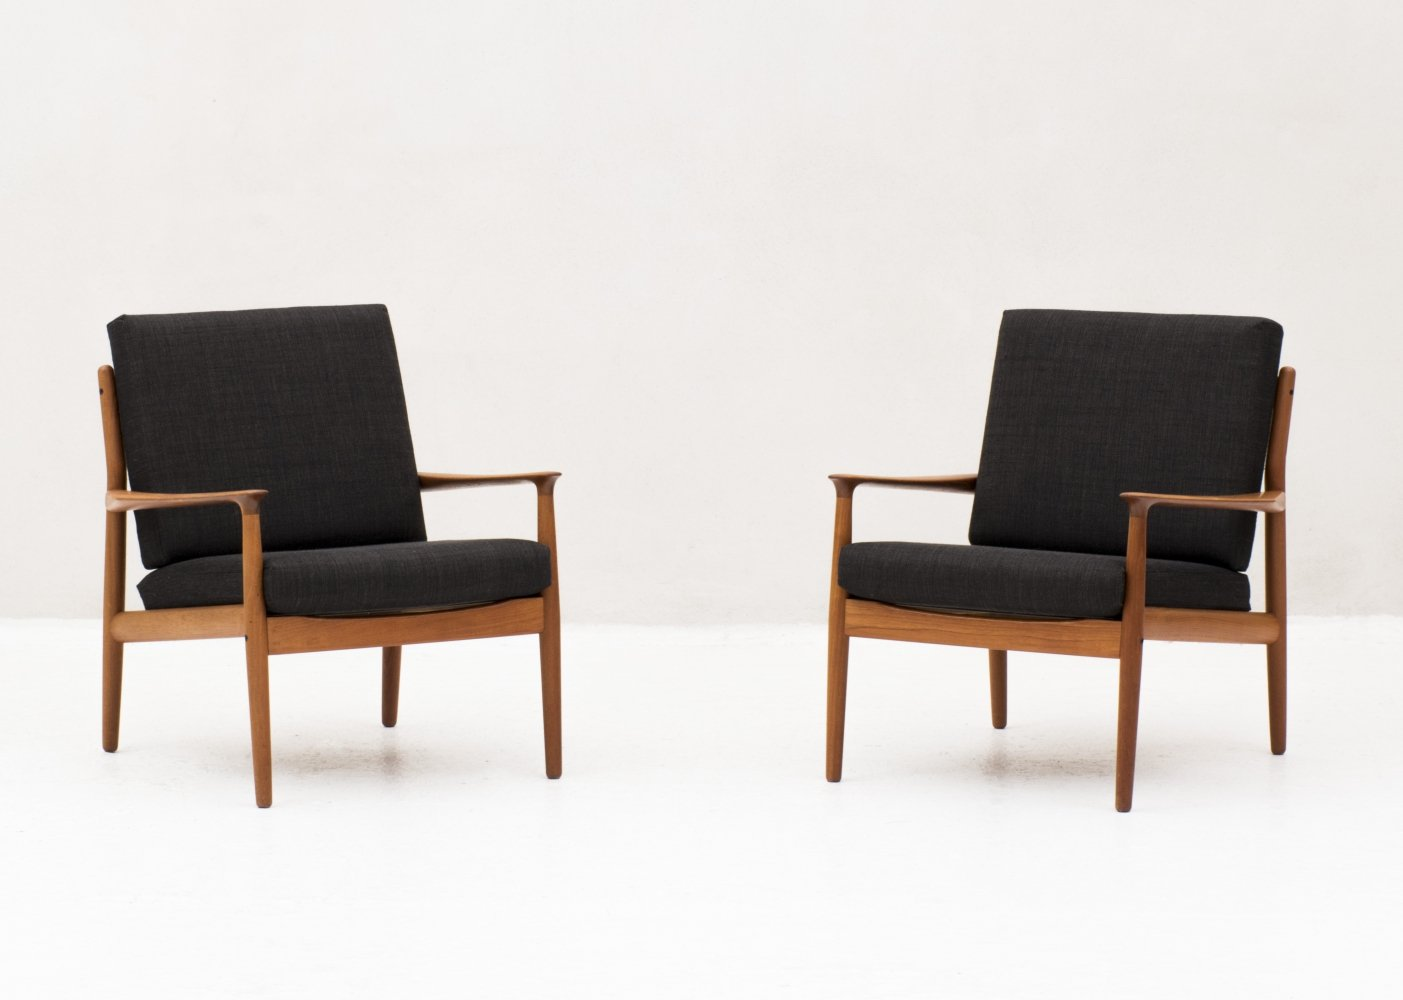 2 easy chairs by Grete Jalk for France & Søn, Denmark 1960